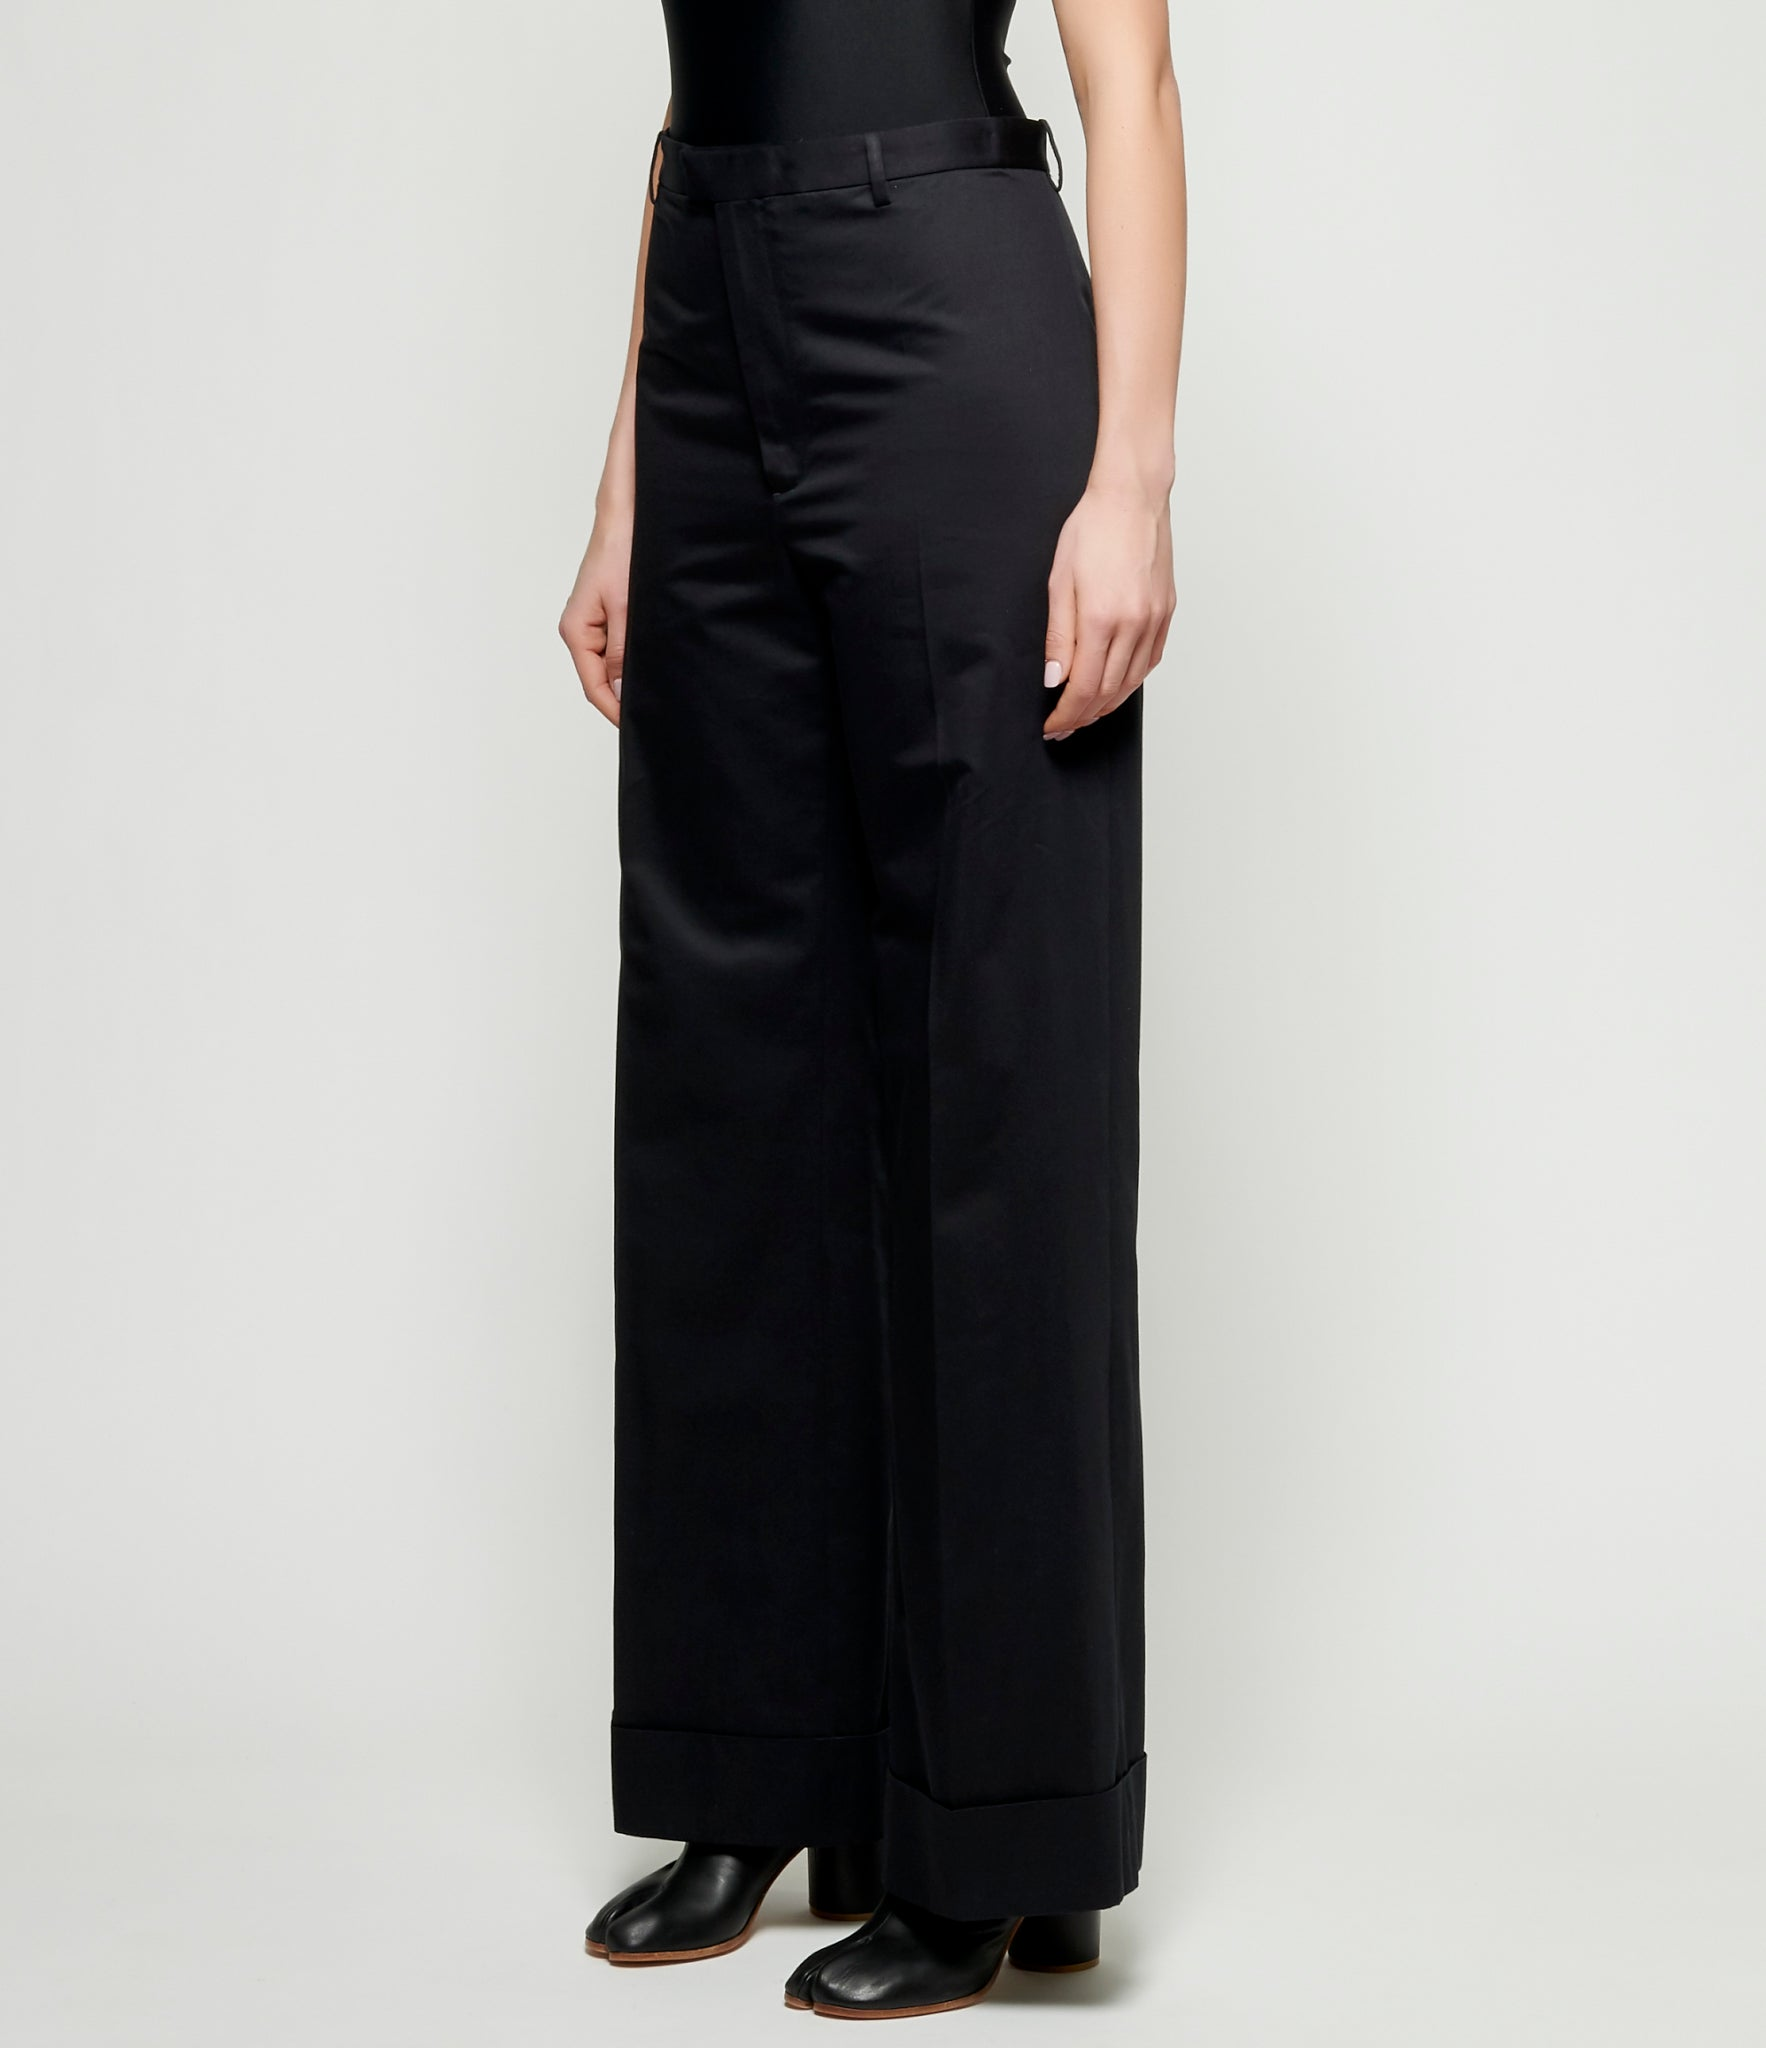 Maison Margiela Fine Cotton Trousers